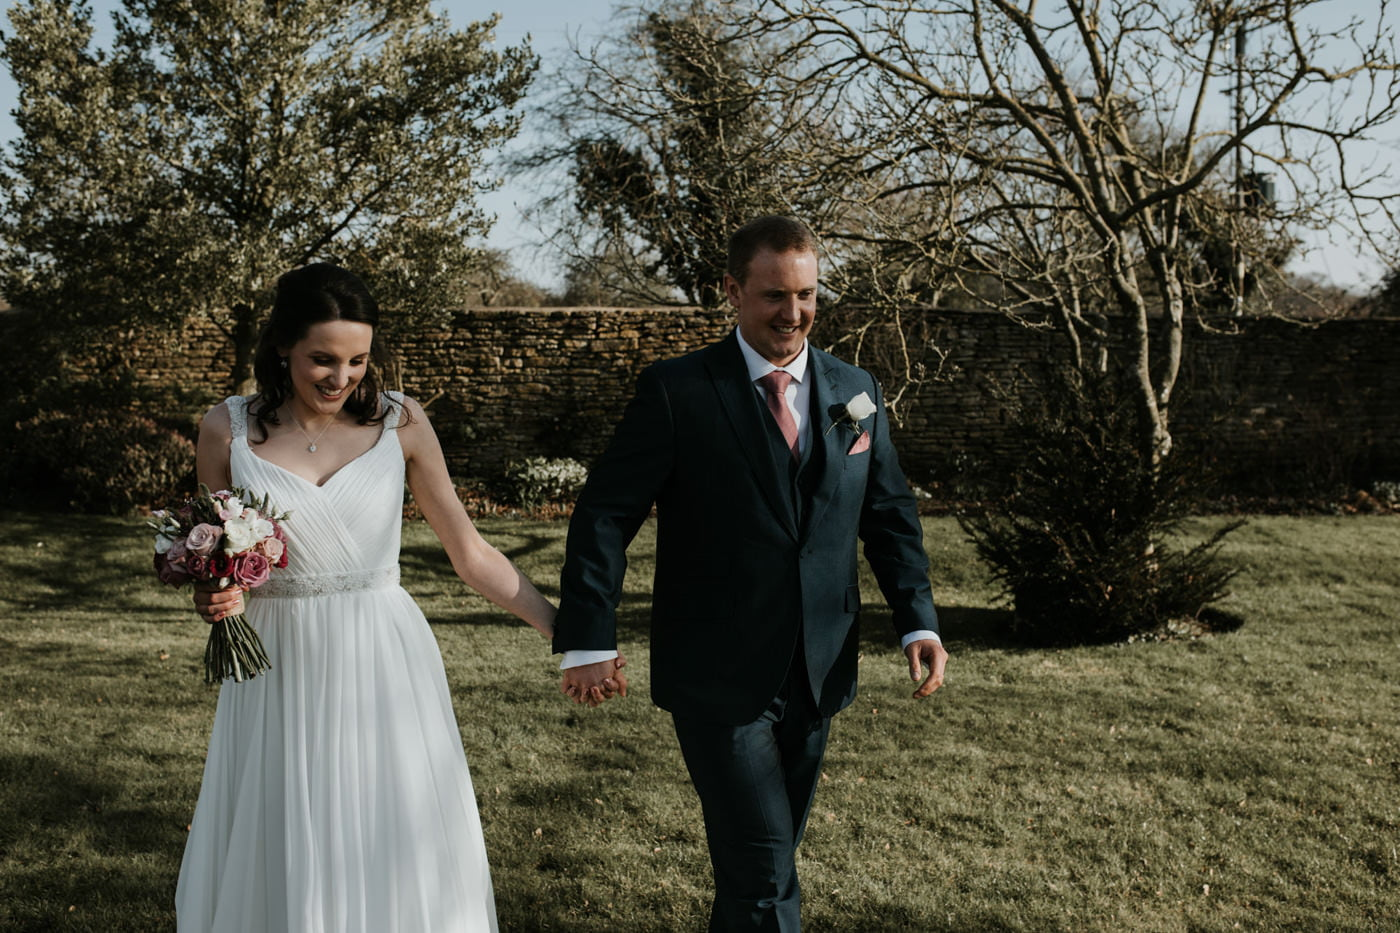 Ruth and Ben, Winkworth Farm, Wiltshire 78